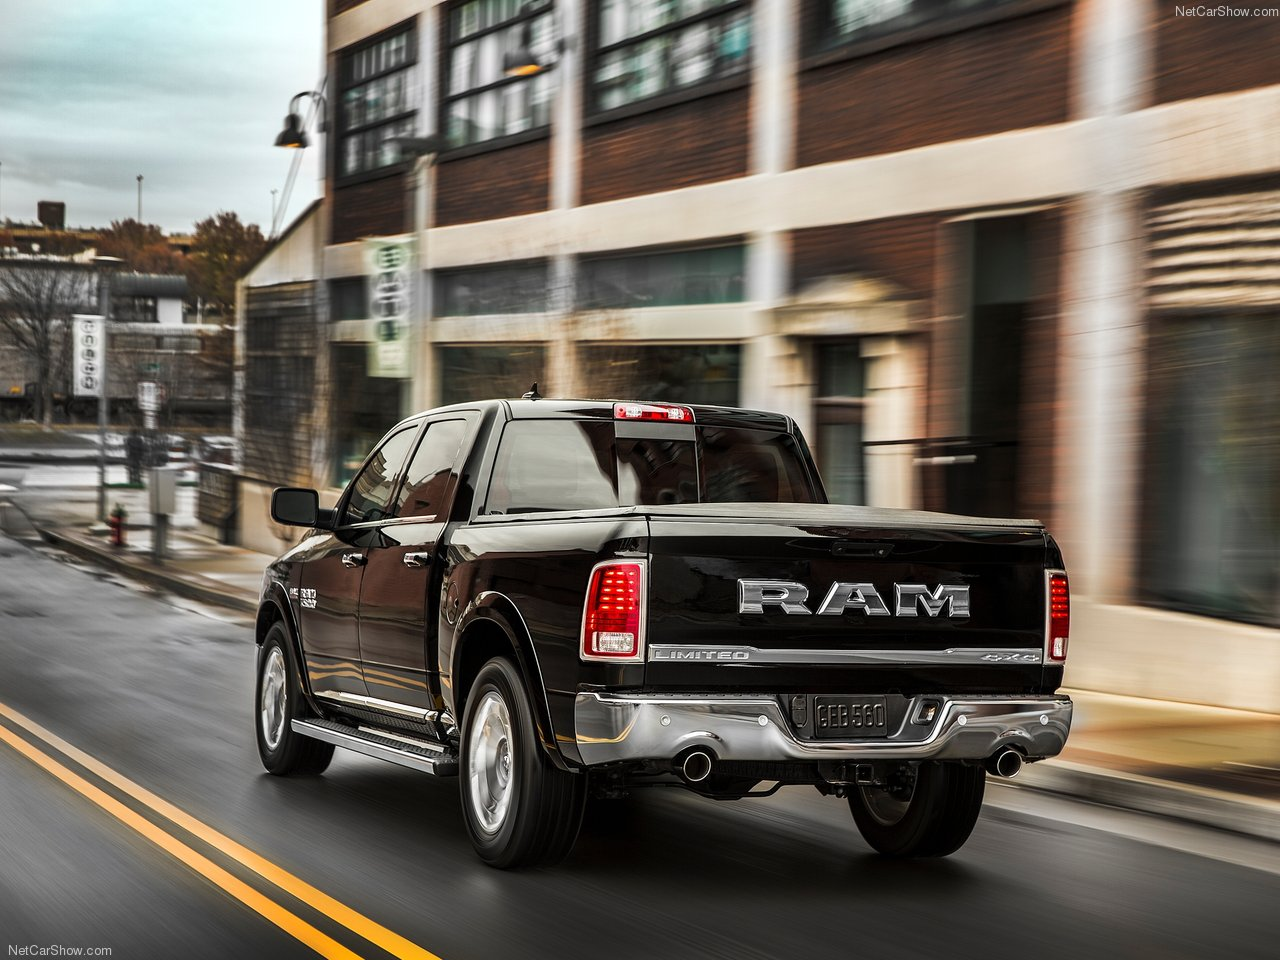 Dodge Ram 1500 Laramie Limited photos - PhotoGallery with 26 pics ...